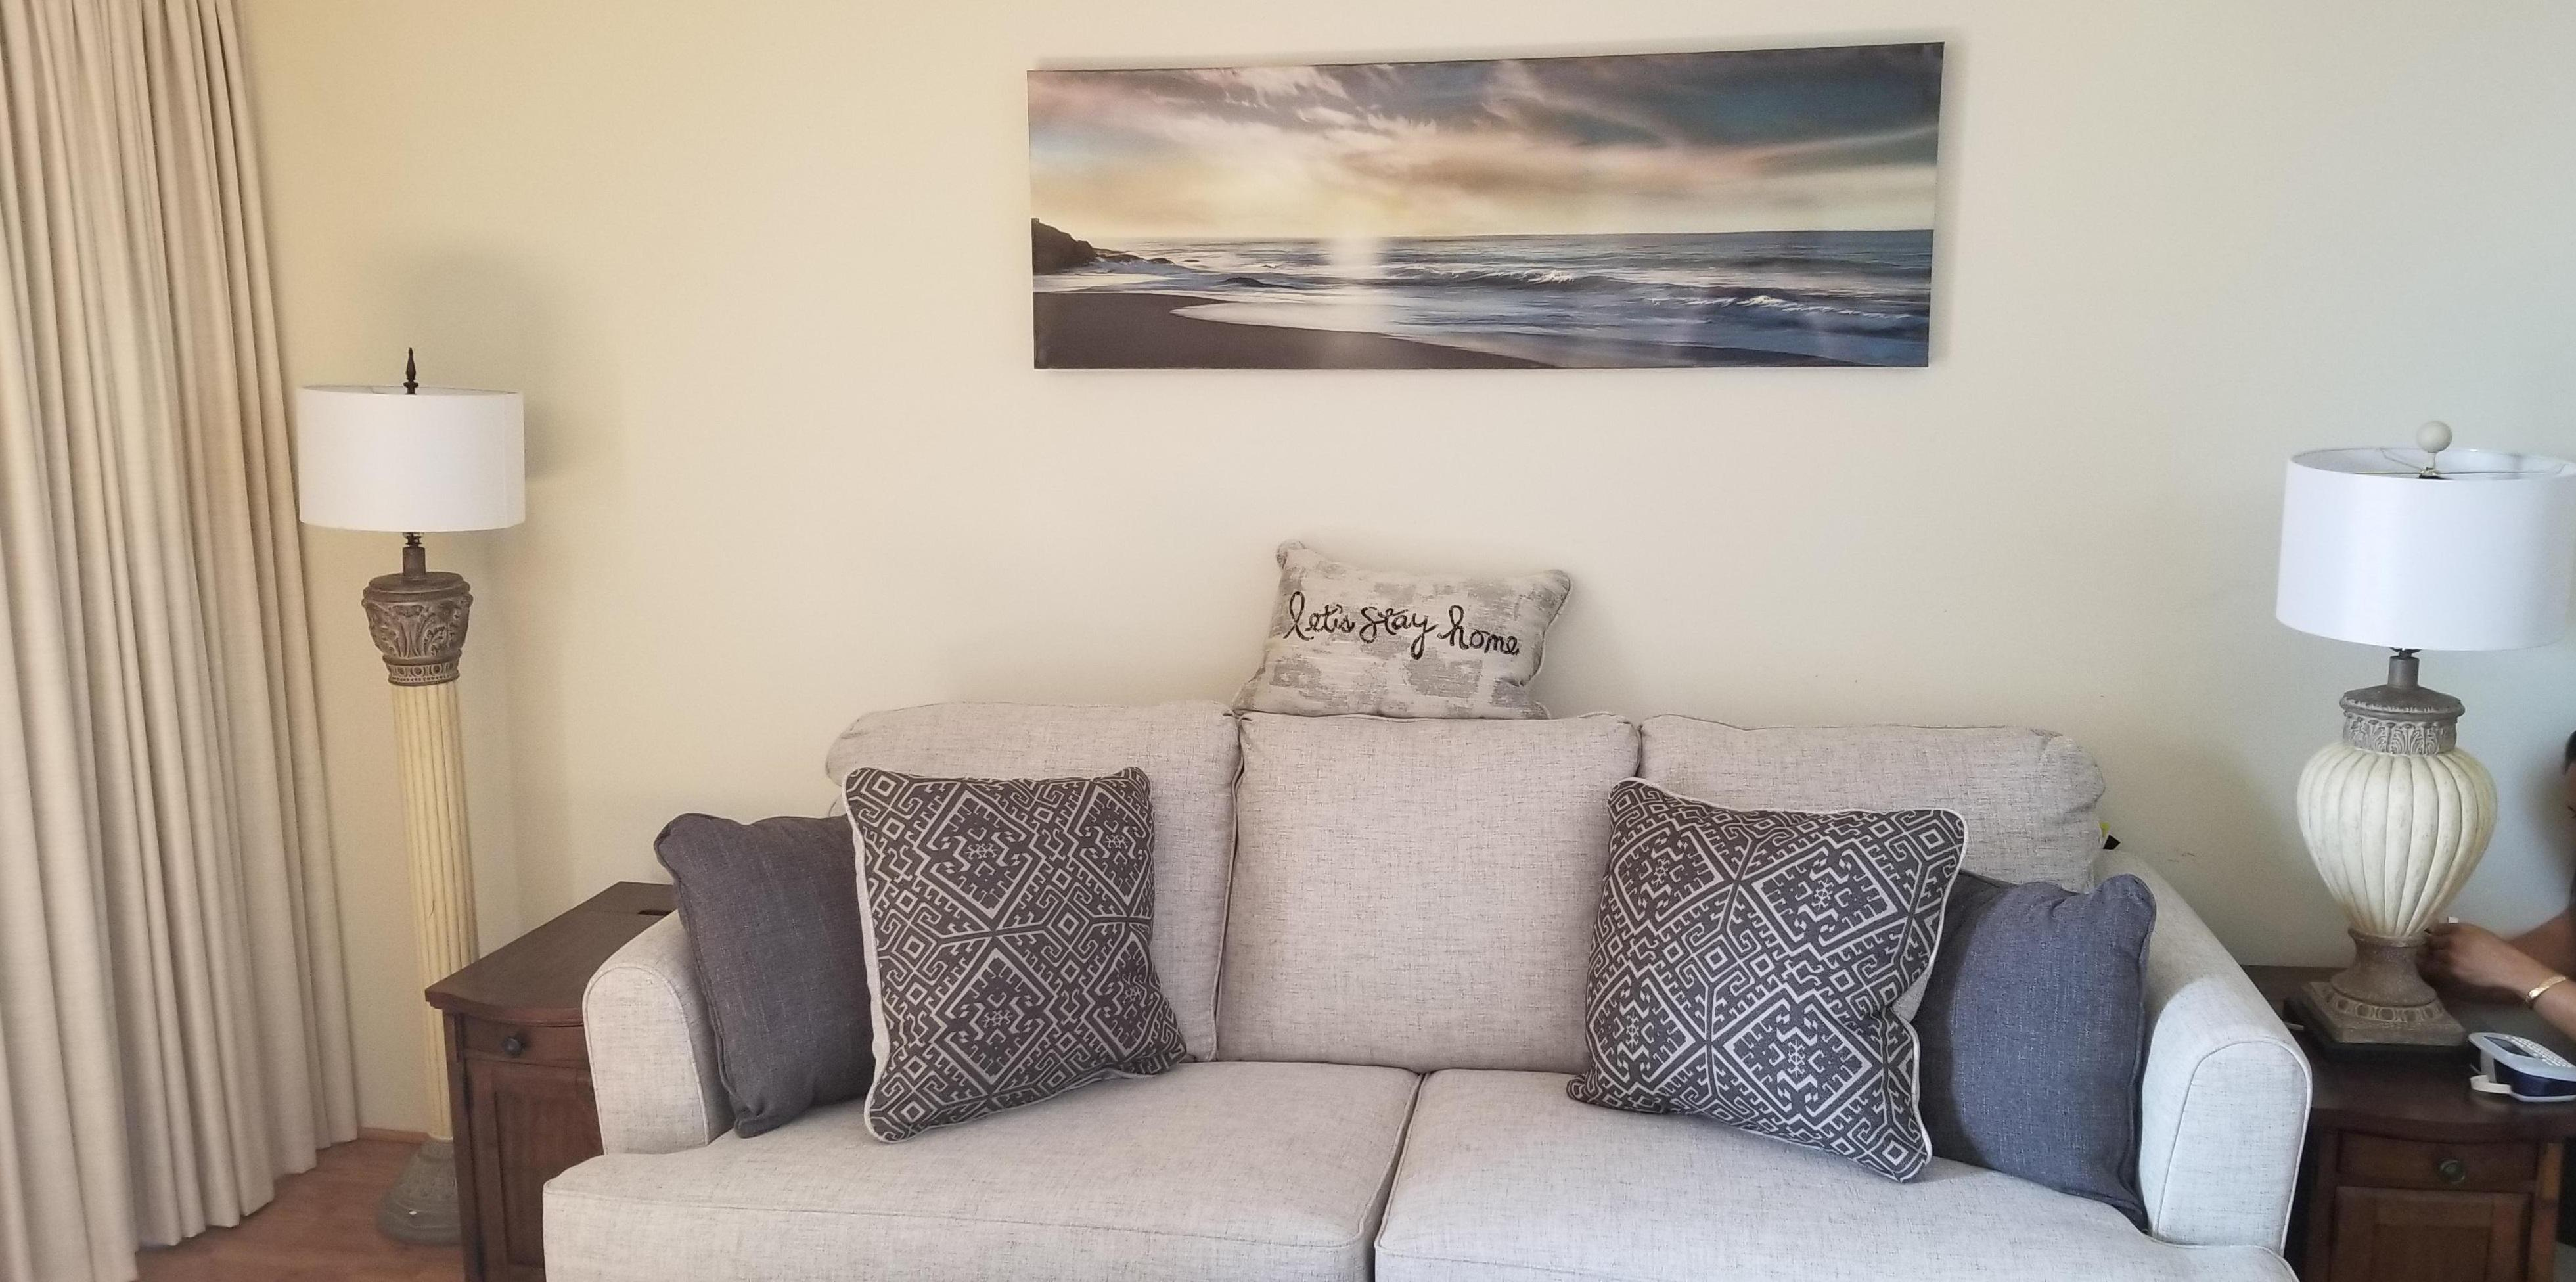 NEW art on wall above sofa